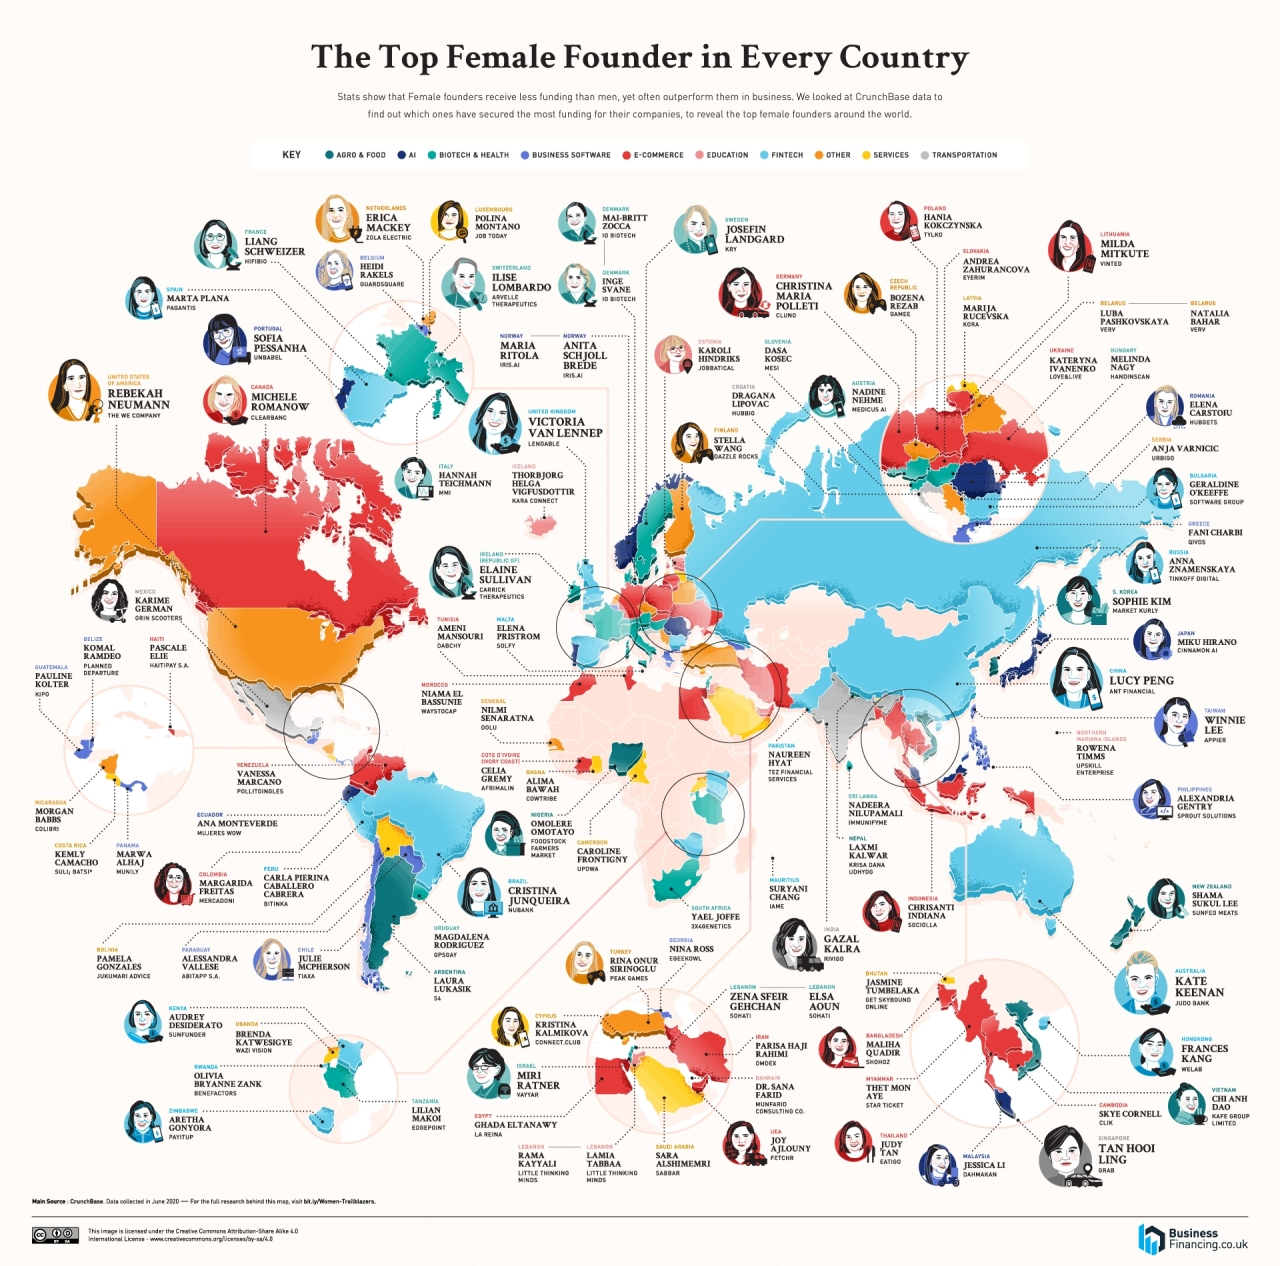 A map shows the locations of female founders from around the world. (Businessfinancing.co.uk)